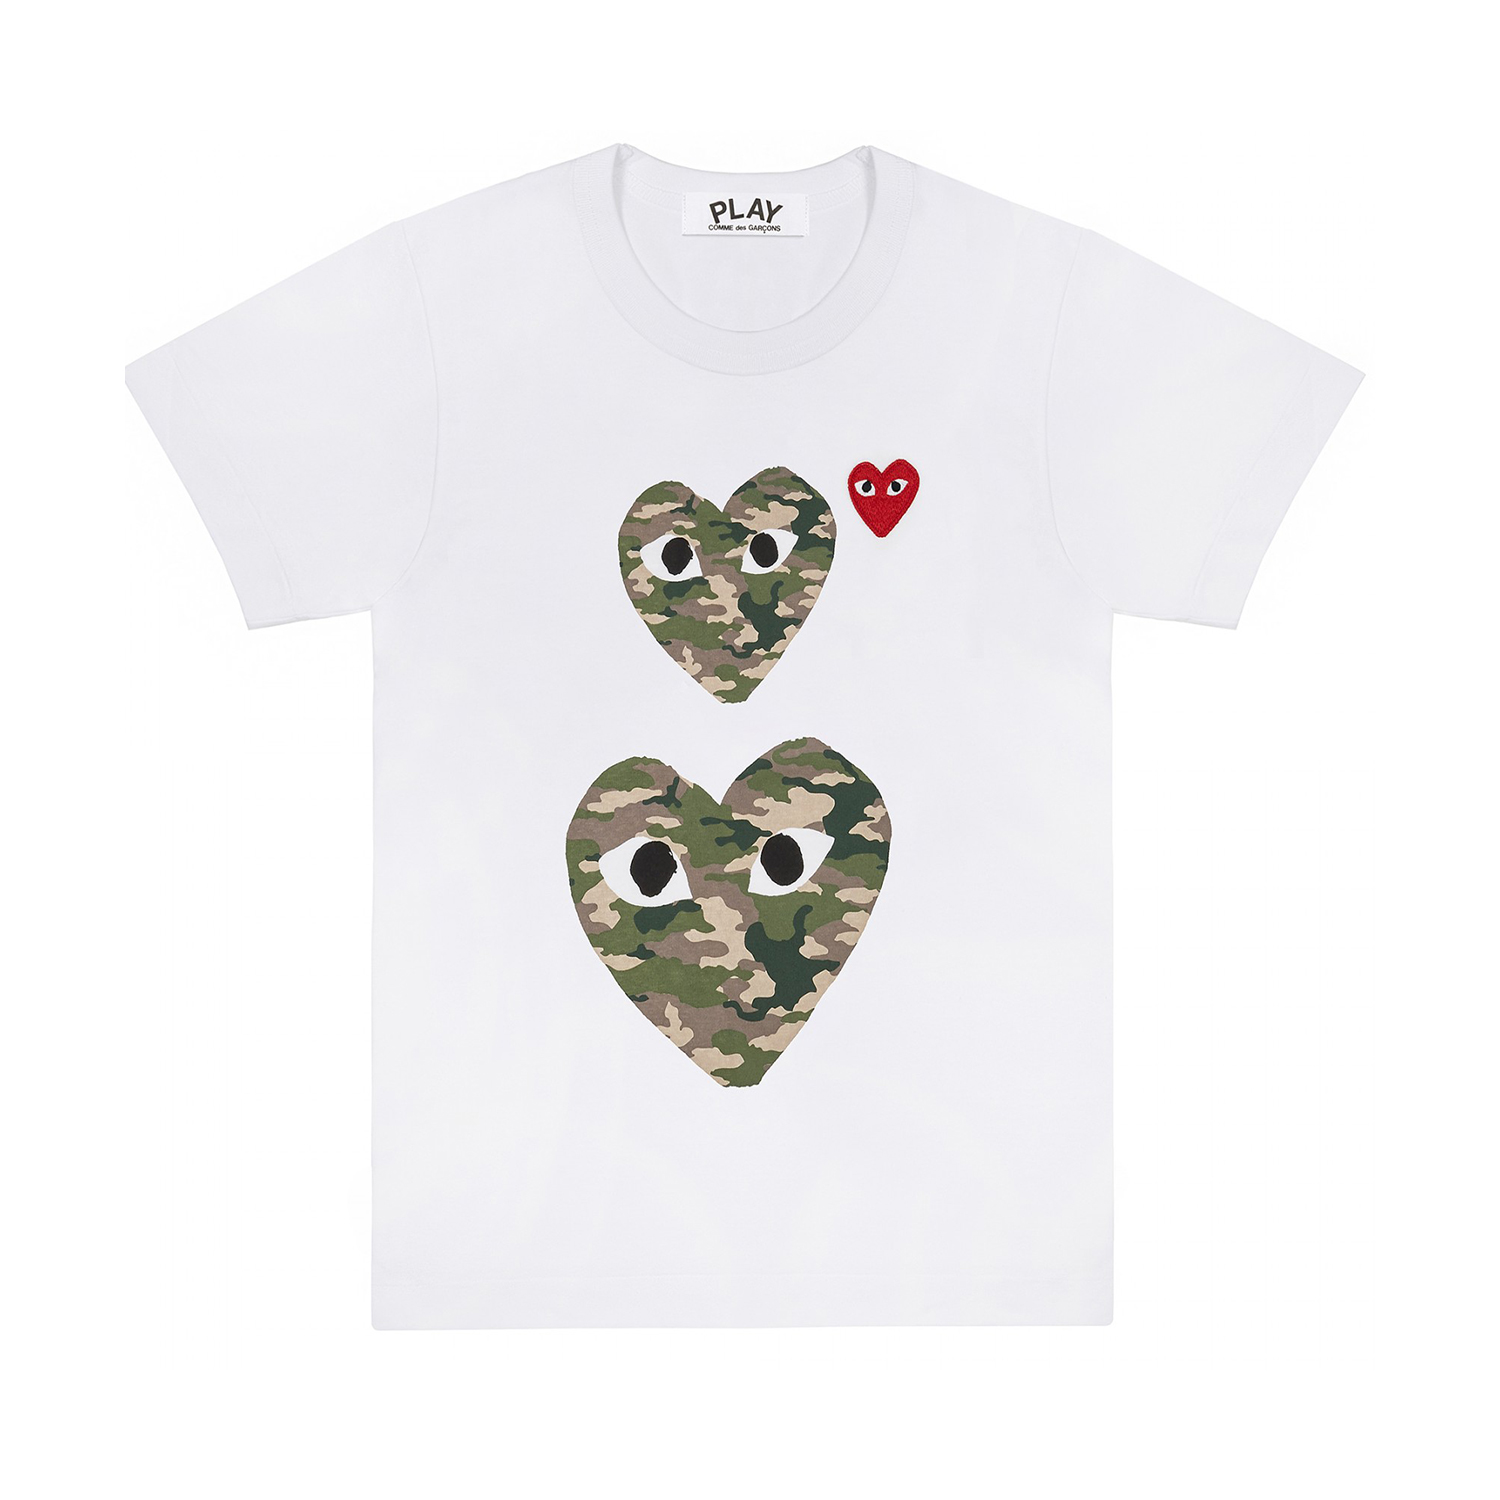 eefa9bd7 New arrivals from CDG Play, including t-shirts featuring camouflage and  polka-dot filled CDG Play logos. Now available at the Billionaire Boys Club  NYC ...